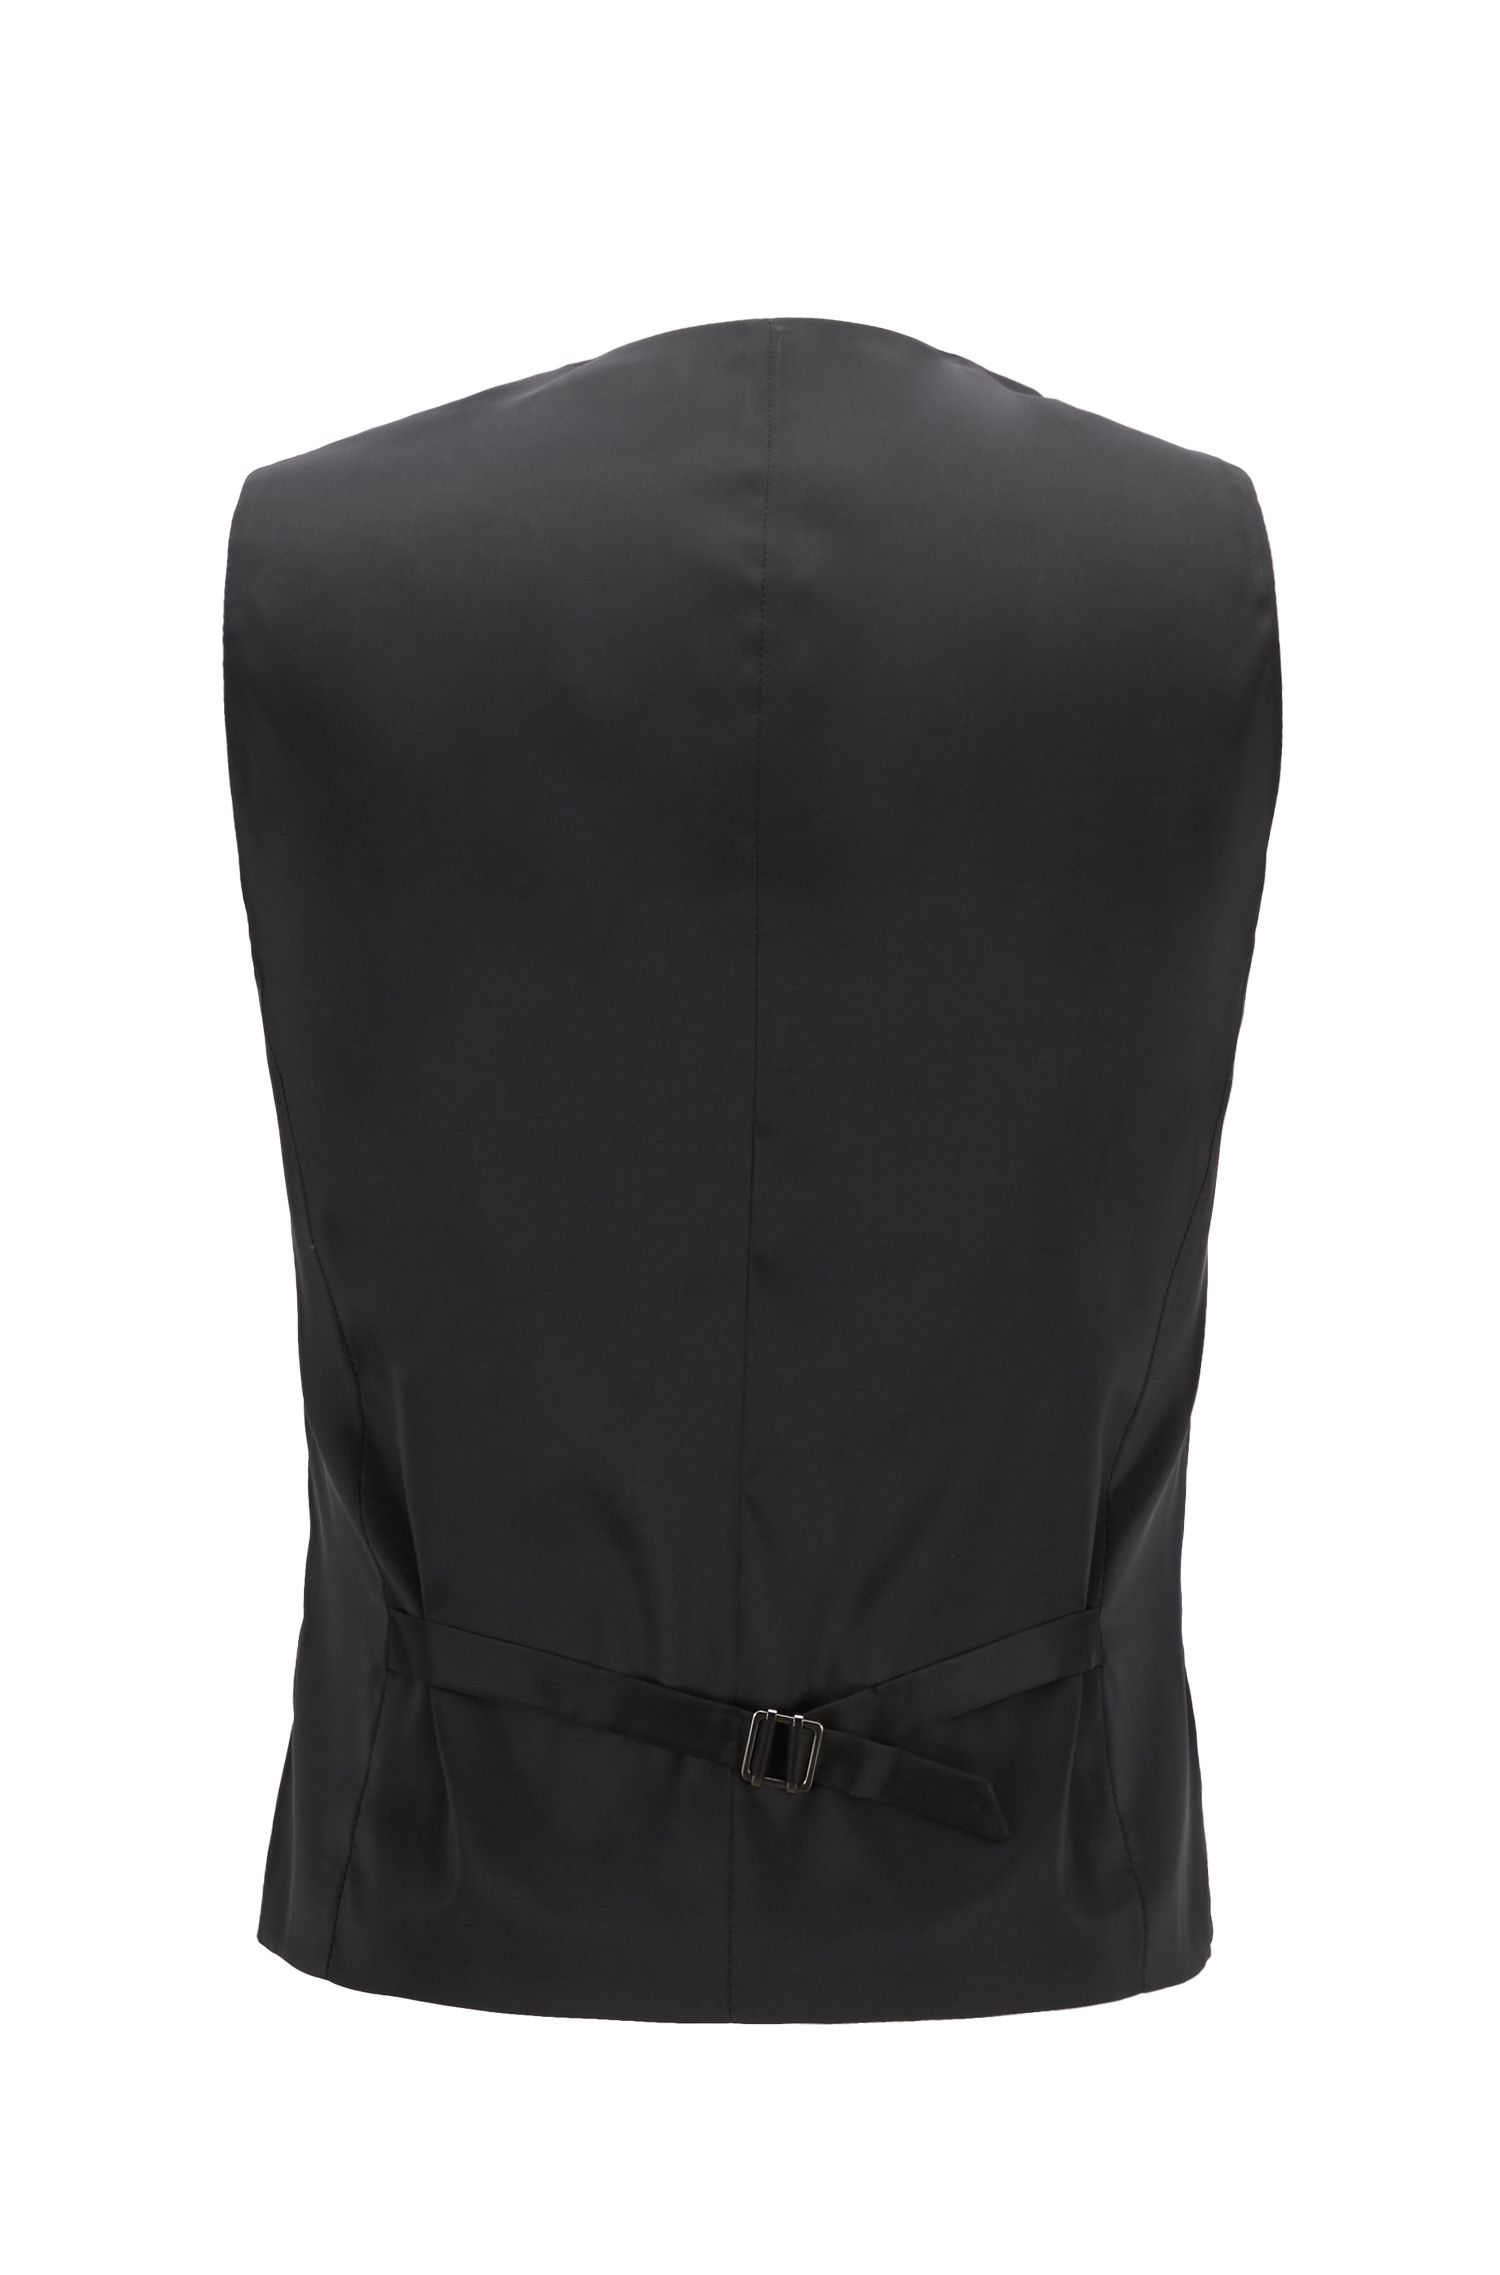 Slim-fit waistcoat in micro-pattern virgin wool, Black